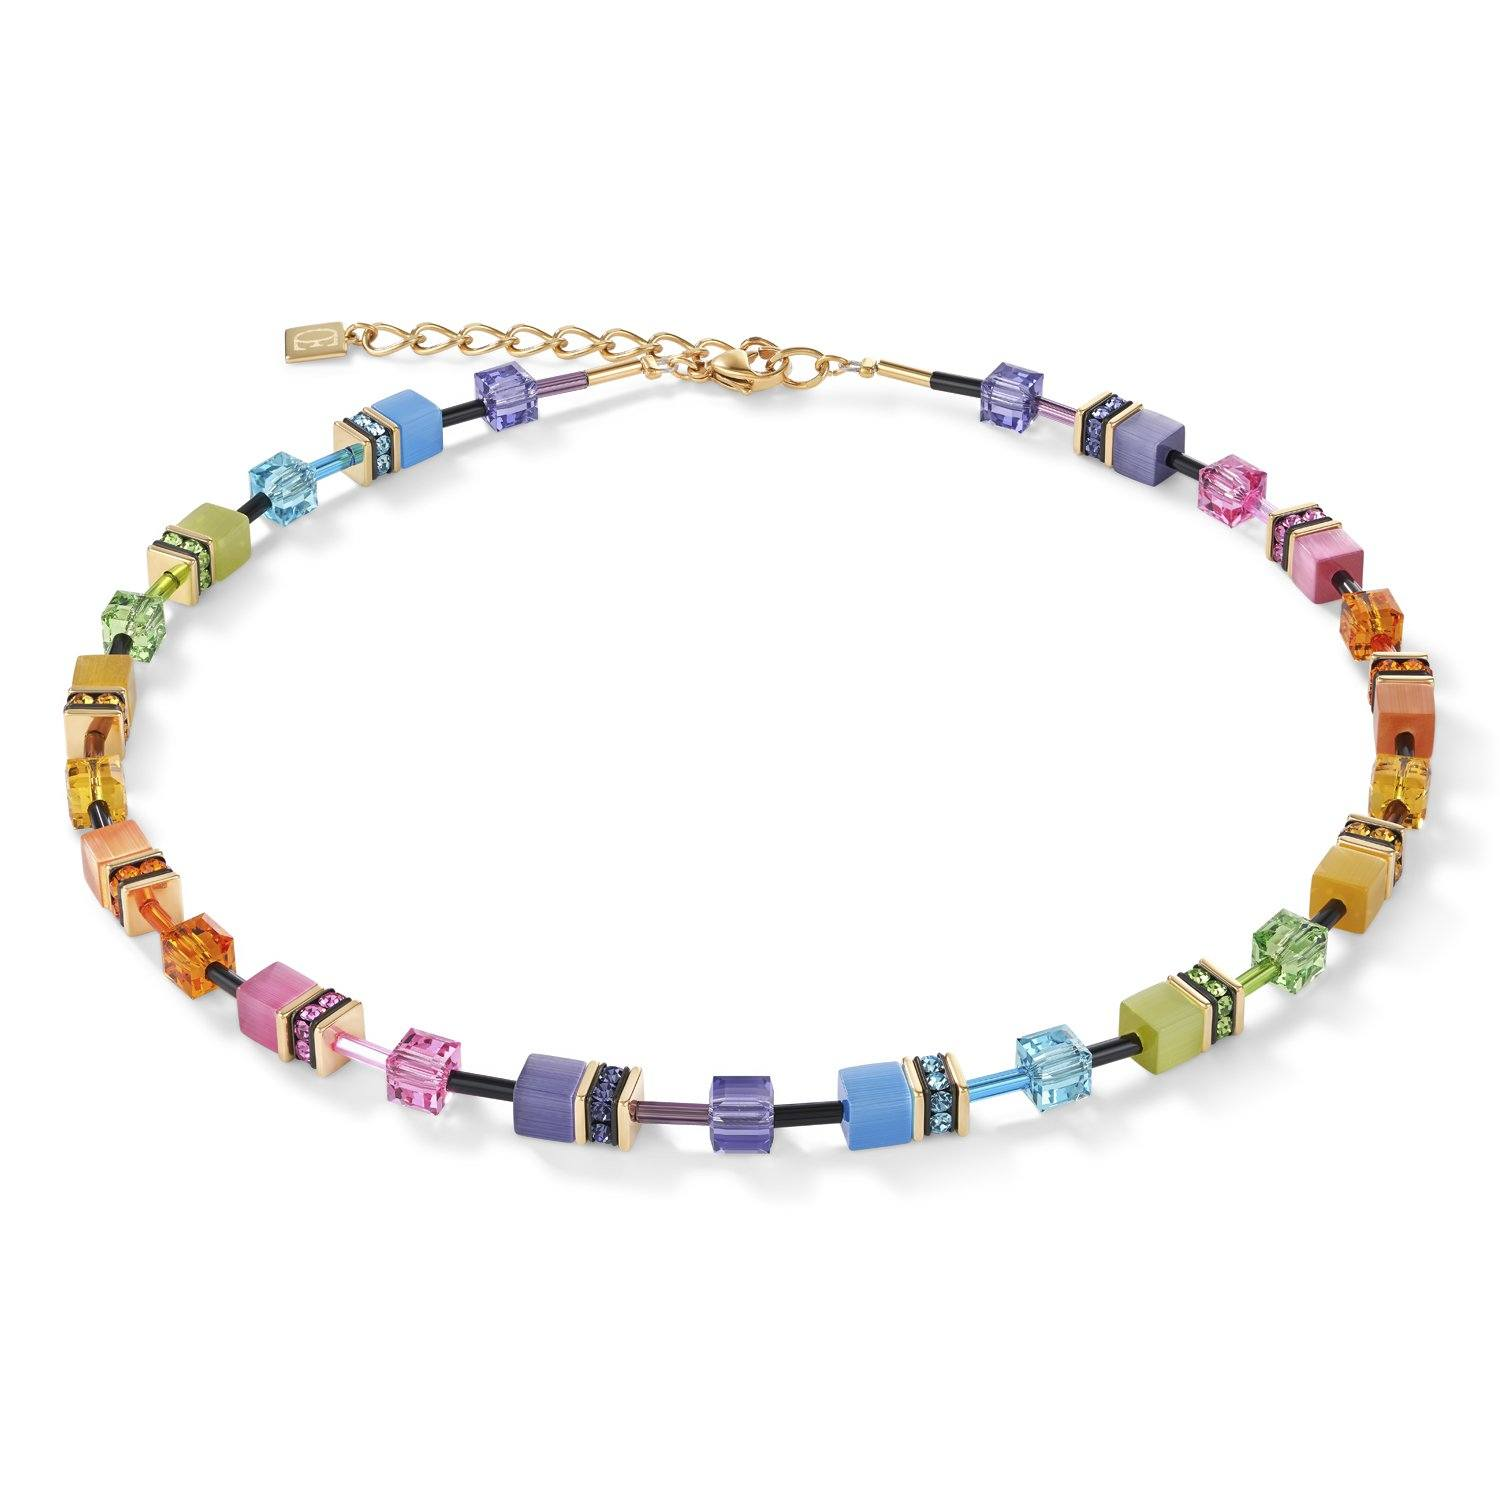 Coeur de Lion Geocube Necklace in Multicolour Rainbow-Gold with Swarovski Crystals 2838/10-1573 Jewellery Coeur de Lion